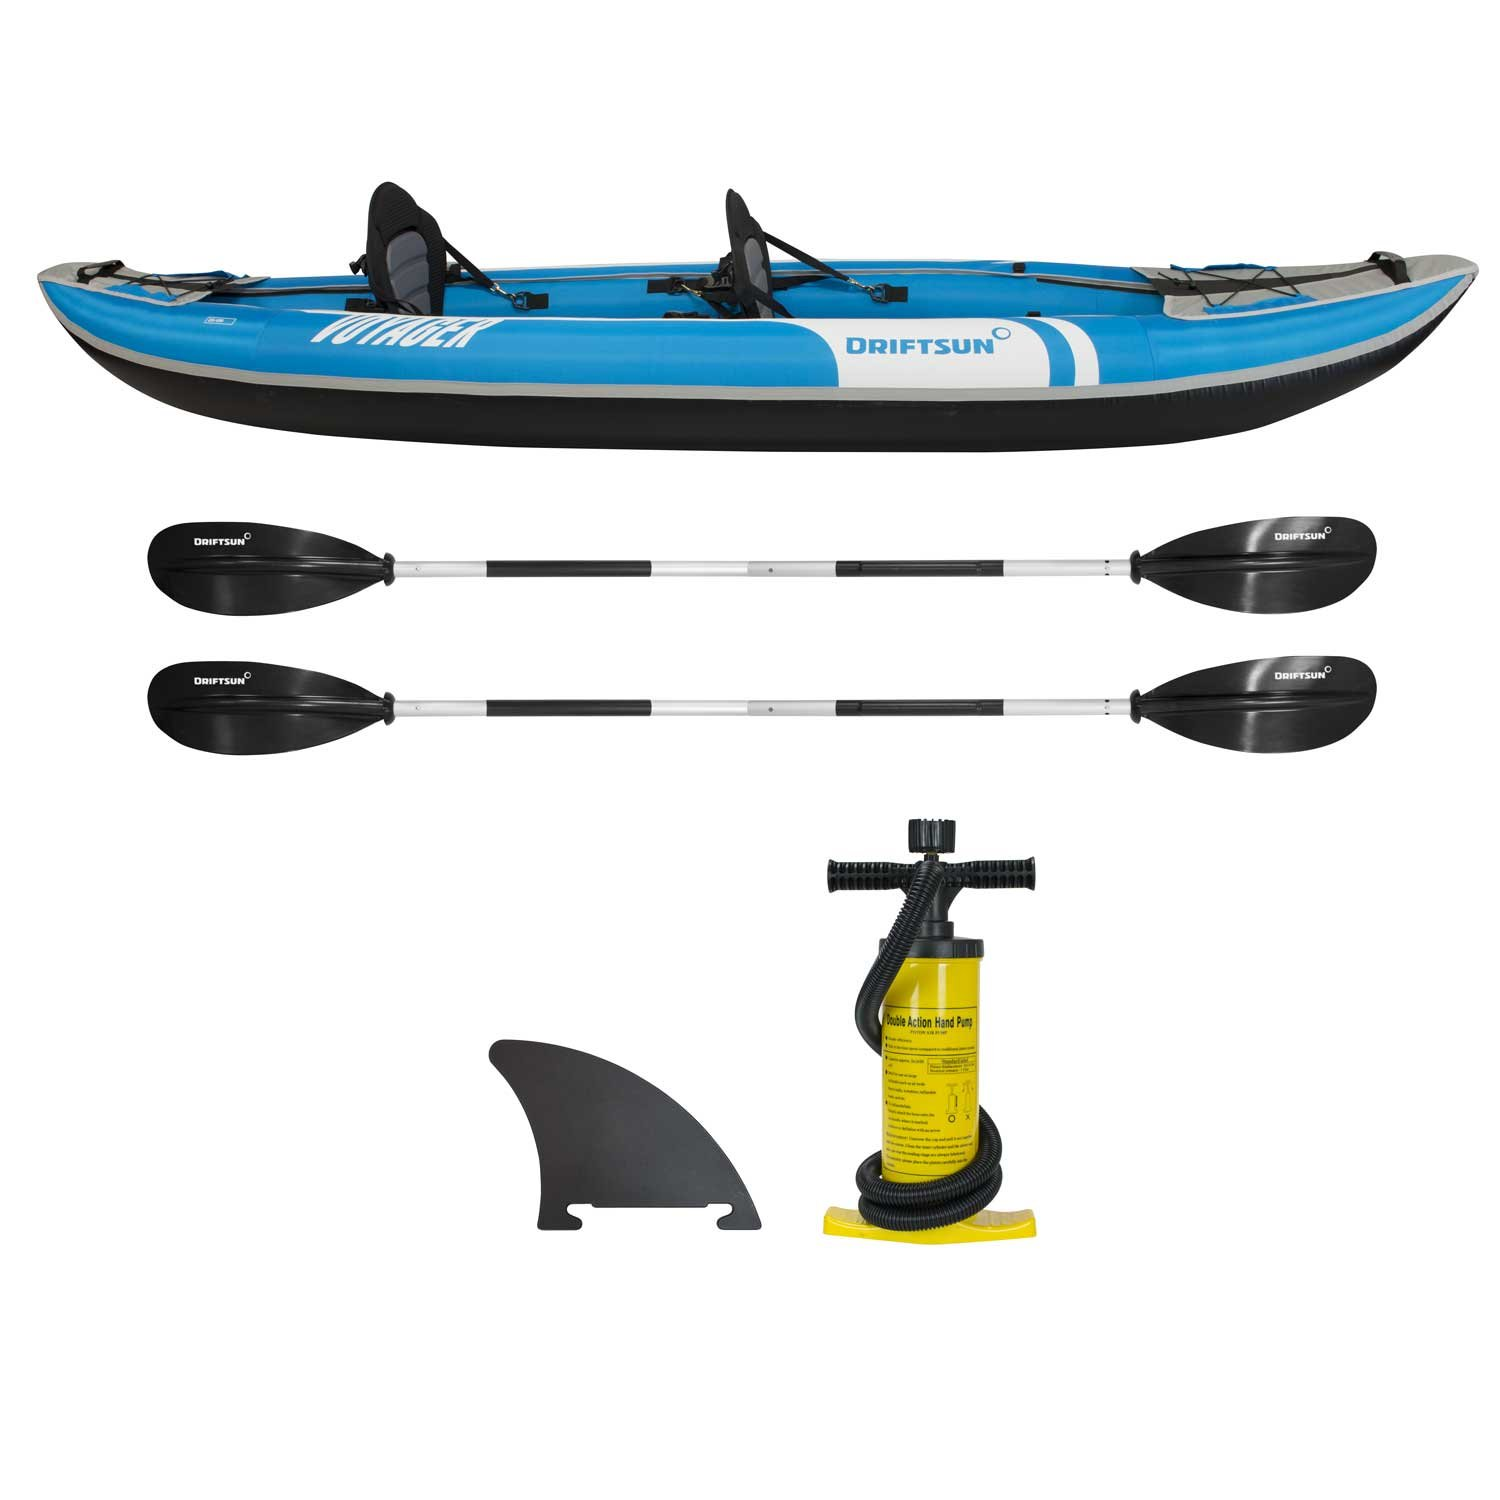 Driftsun Voyager 2 Person Inflatable Kayak - Complete with All Accessories, 2 Paddles, 2 Seats, Double Action Pump and More by Driftsun